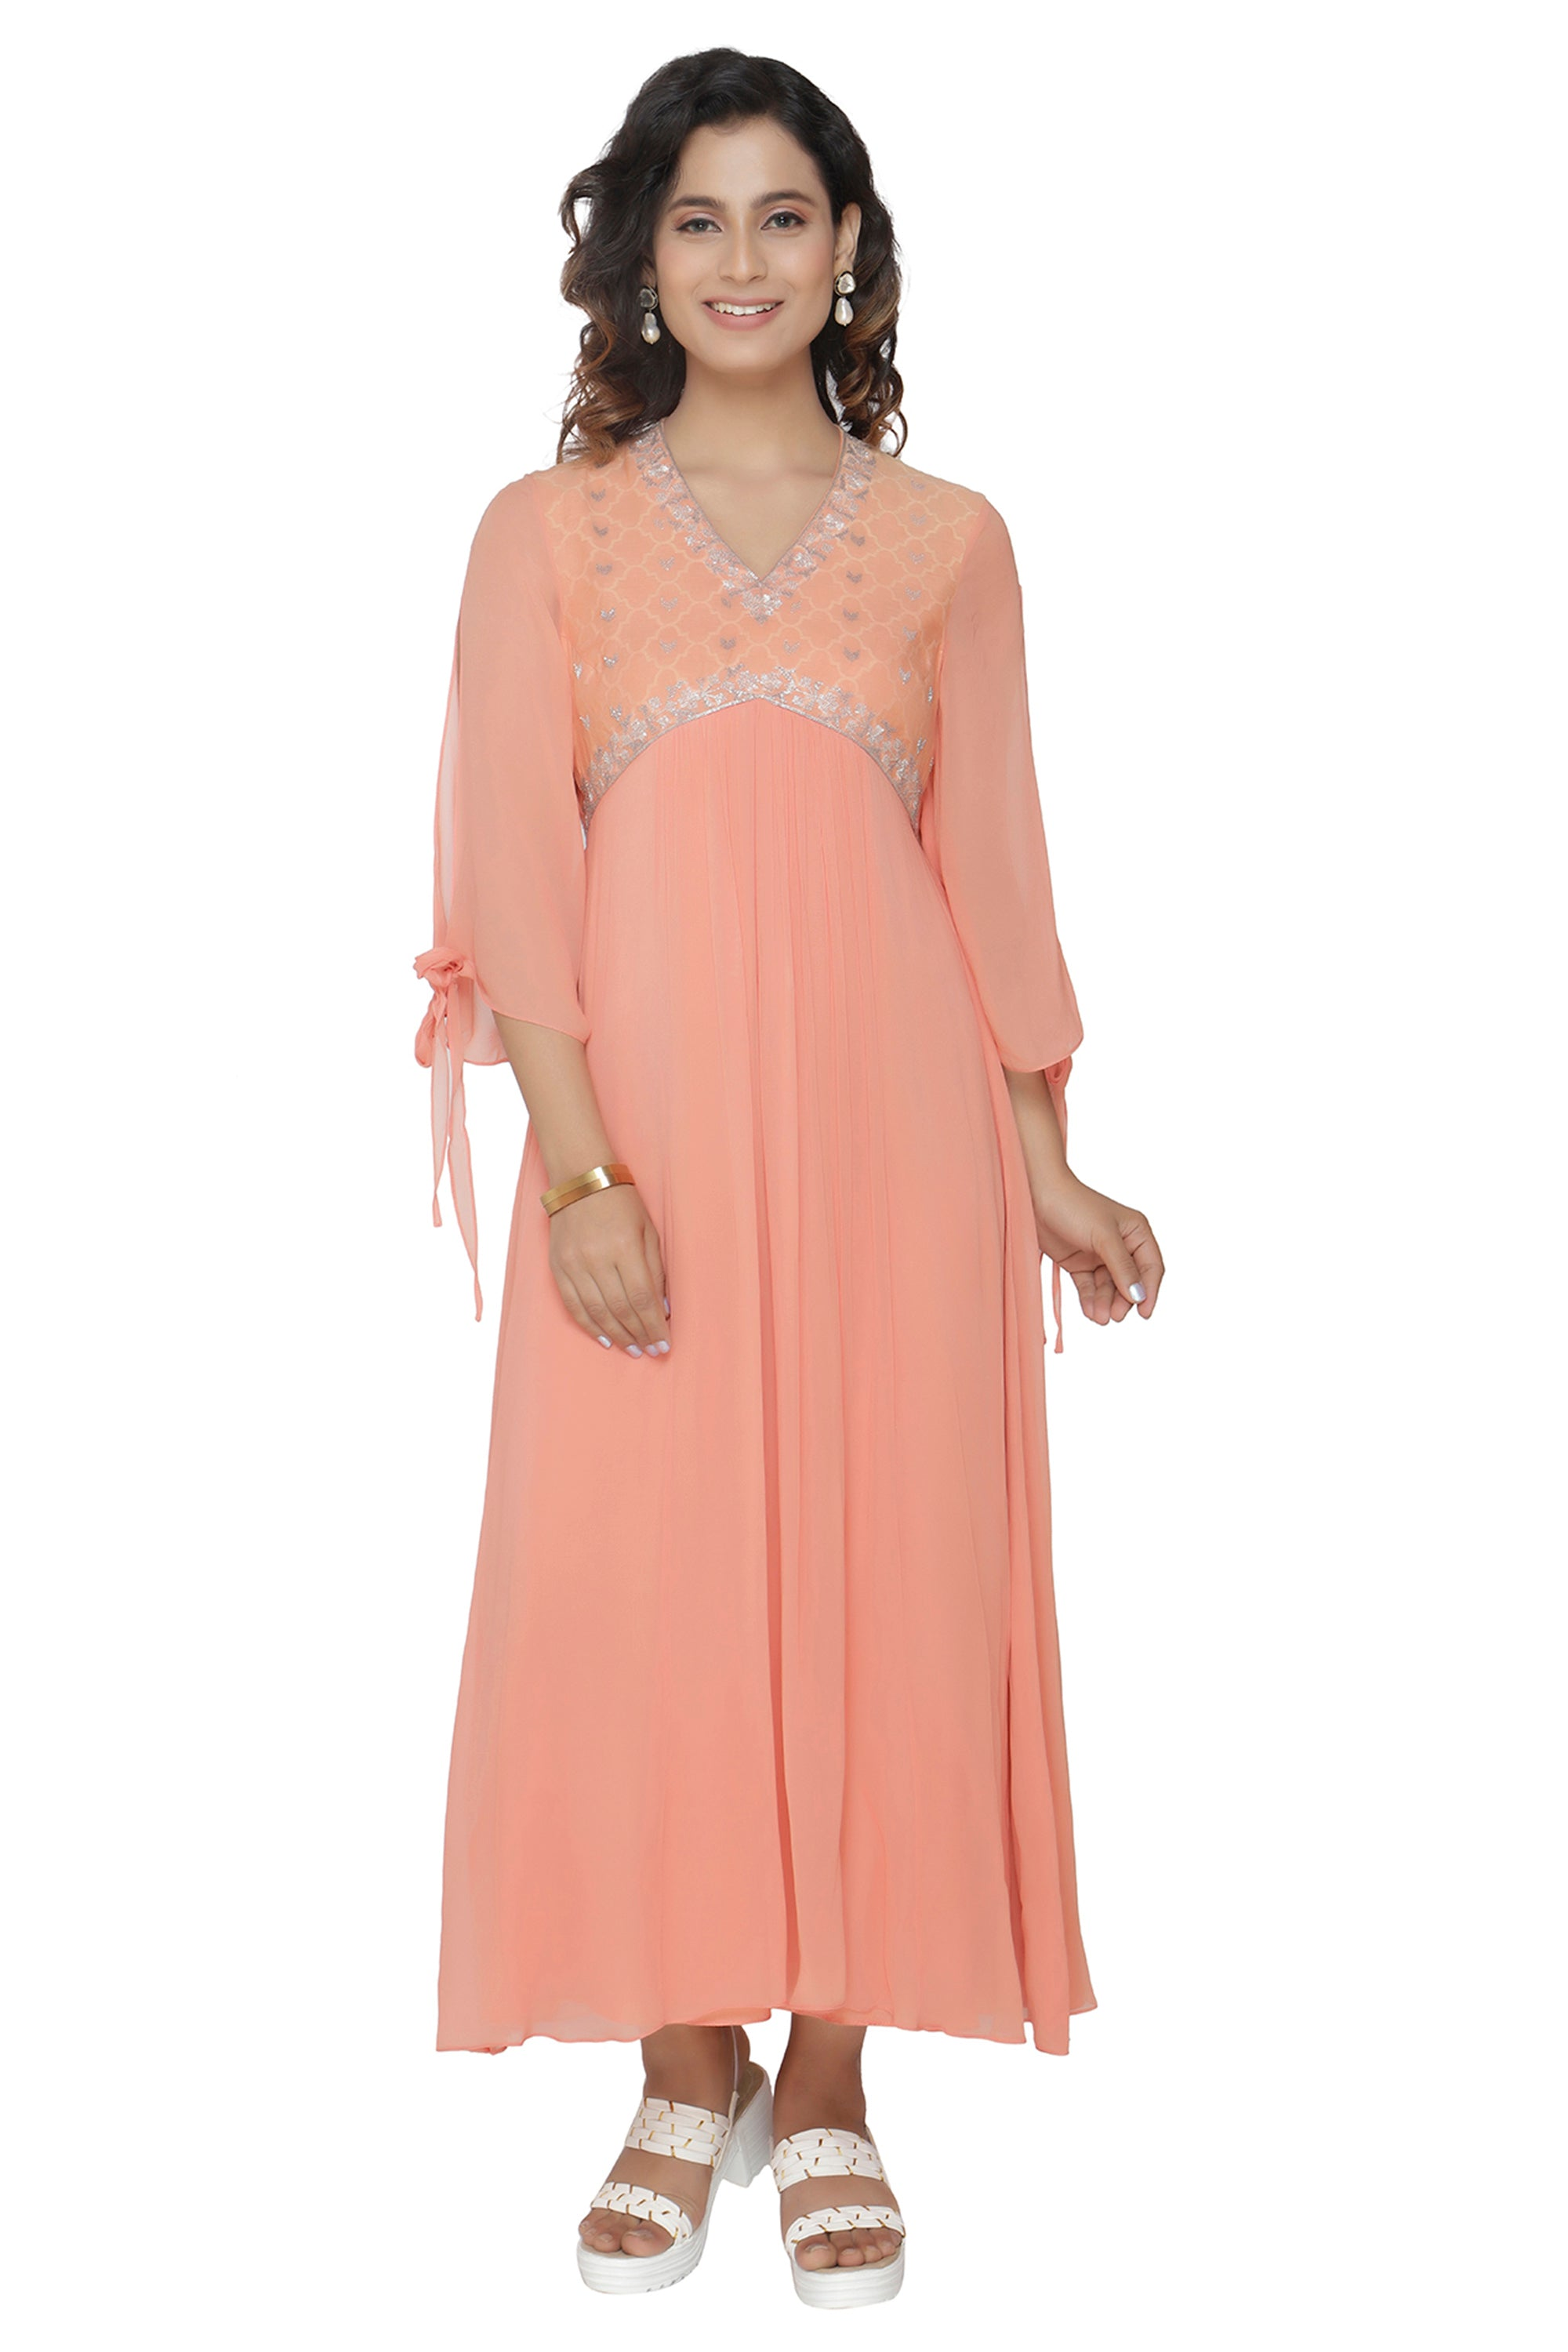 Peach Tunic With Bell Sleeves FRONT